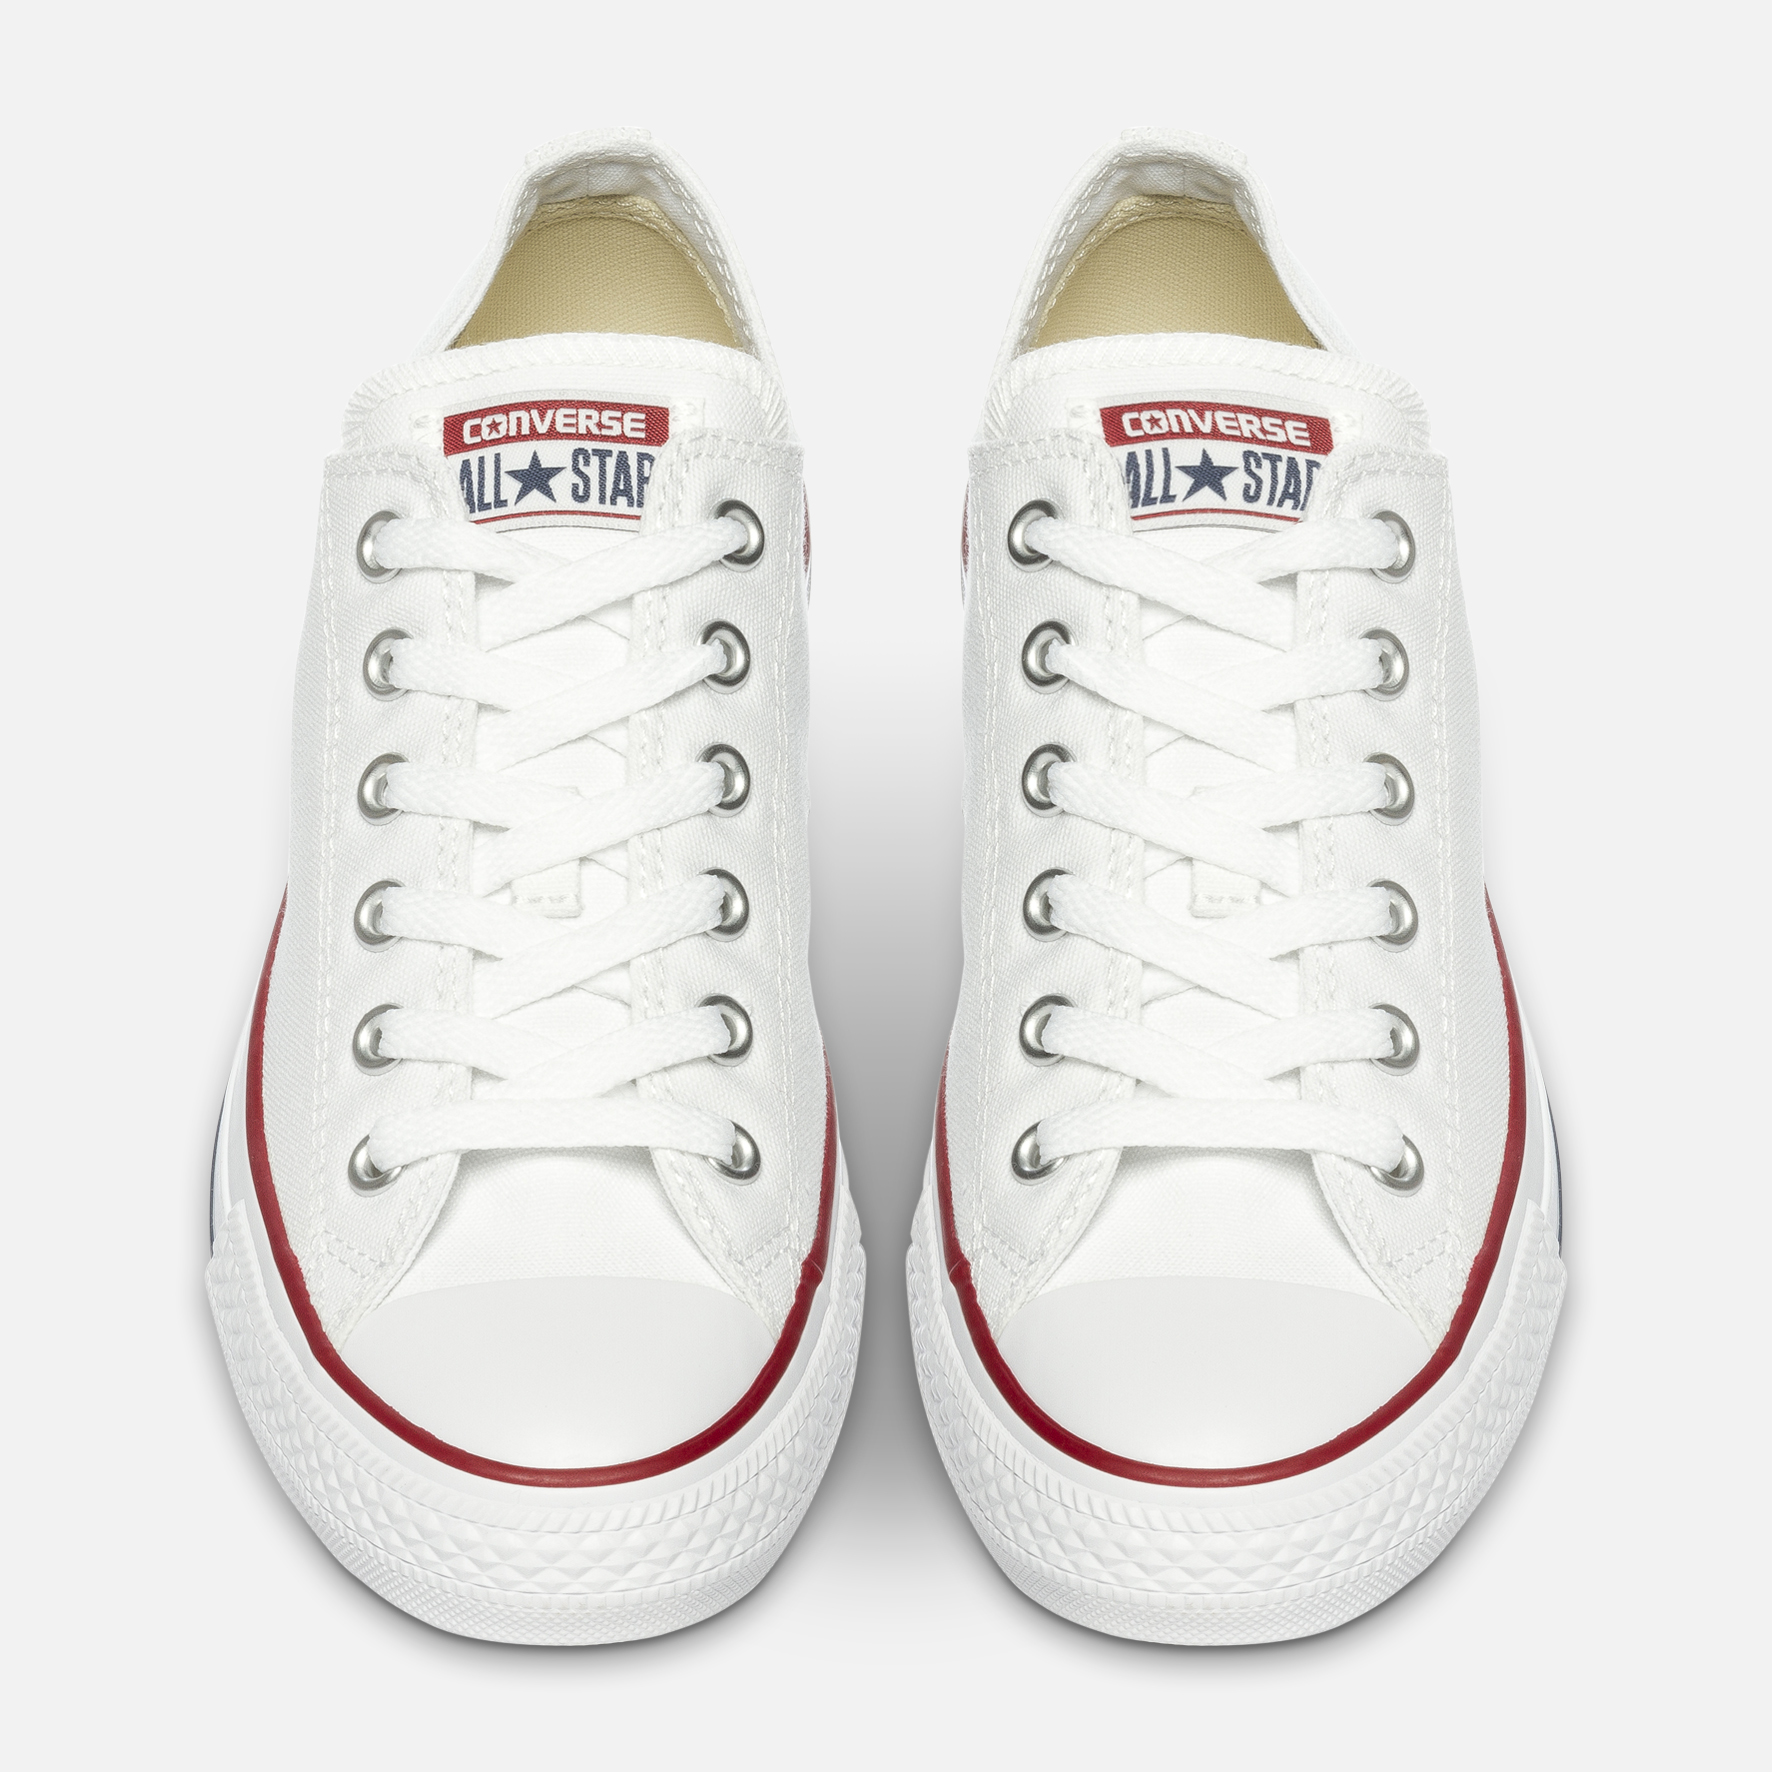 low priced a928b fdedf Converse Jack Purcell Valkoinen - 291321